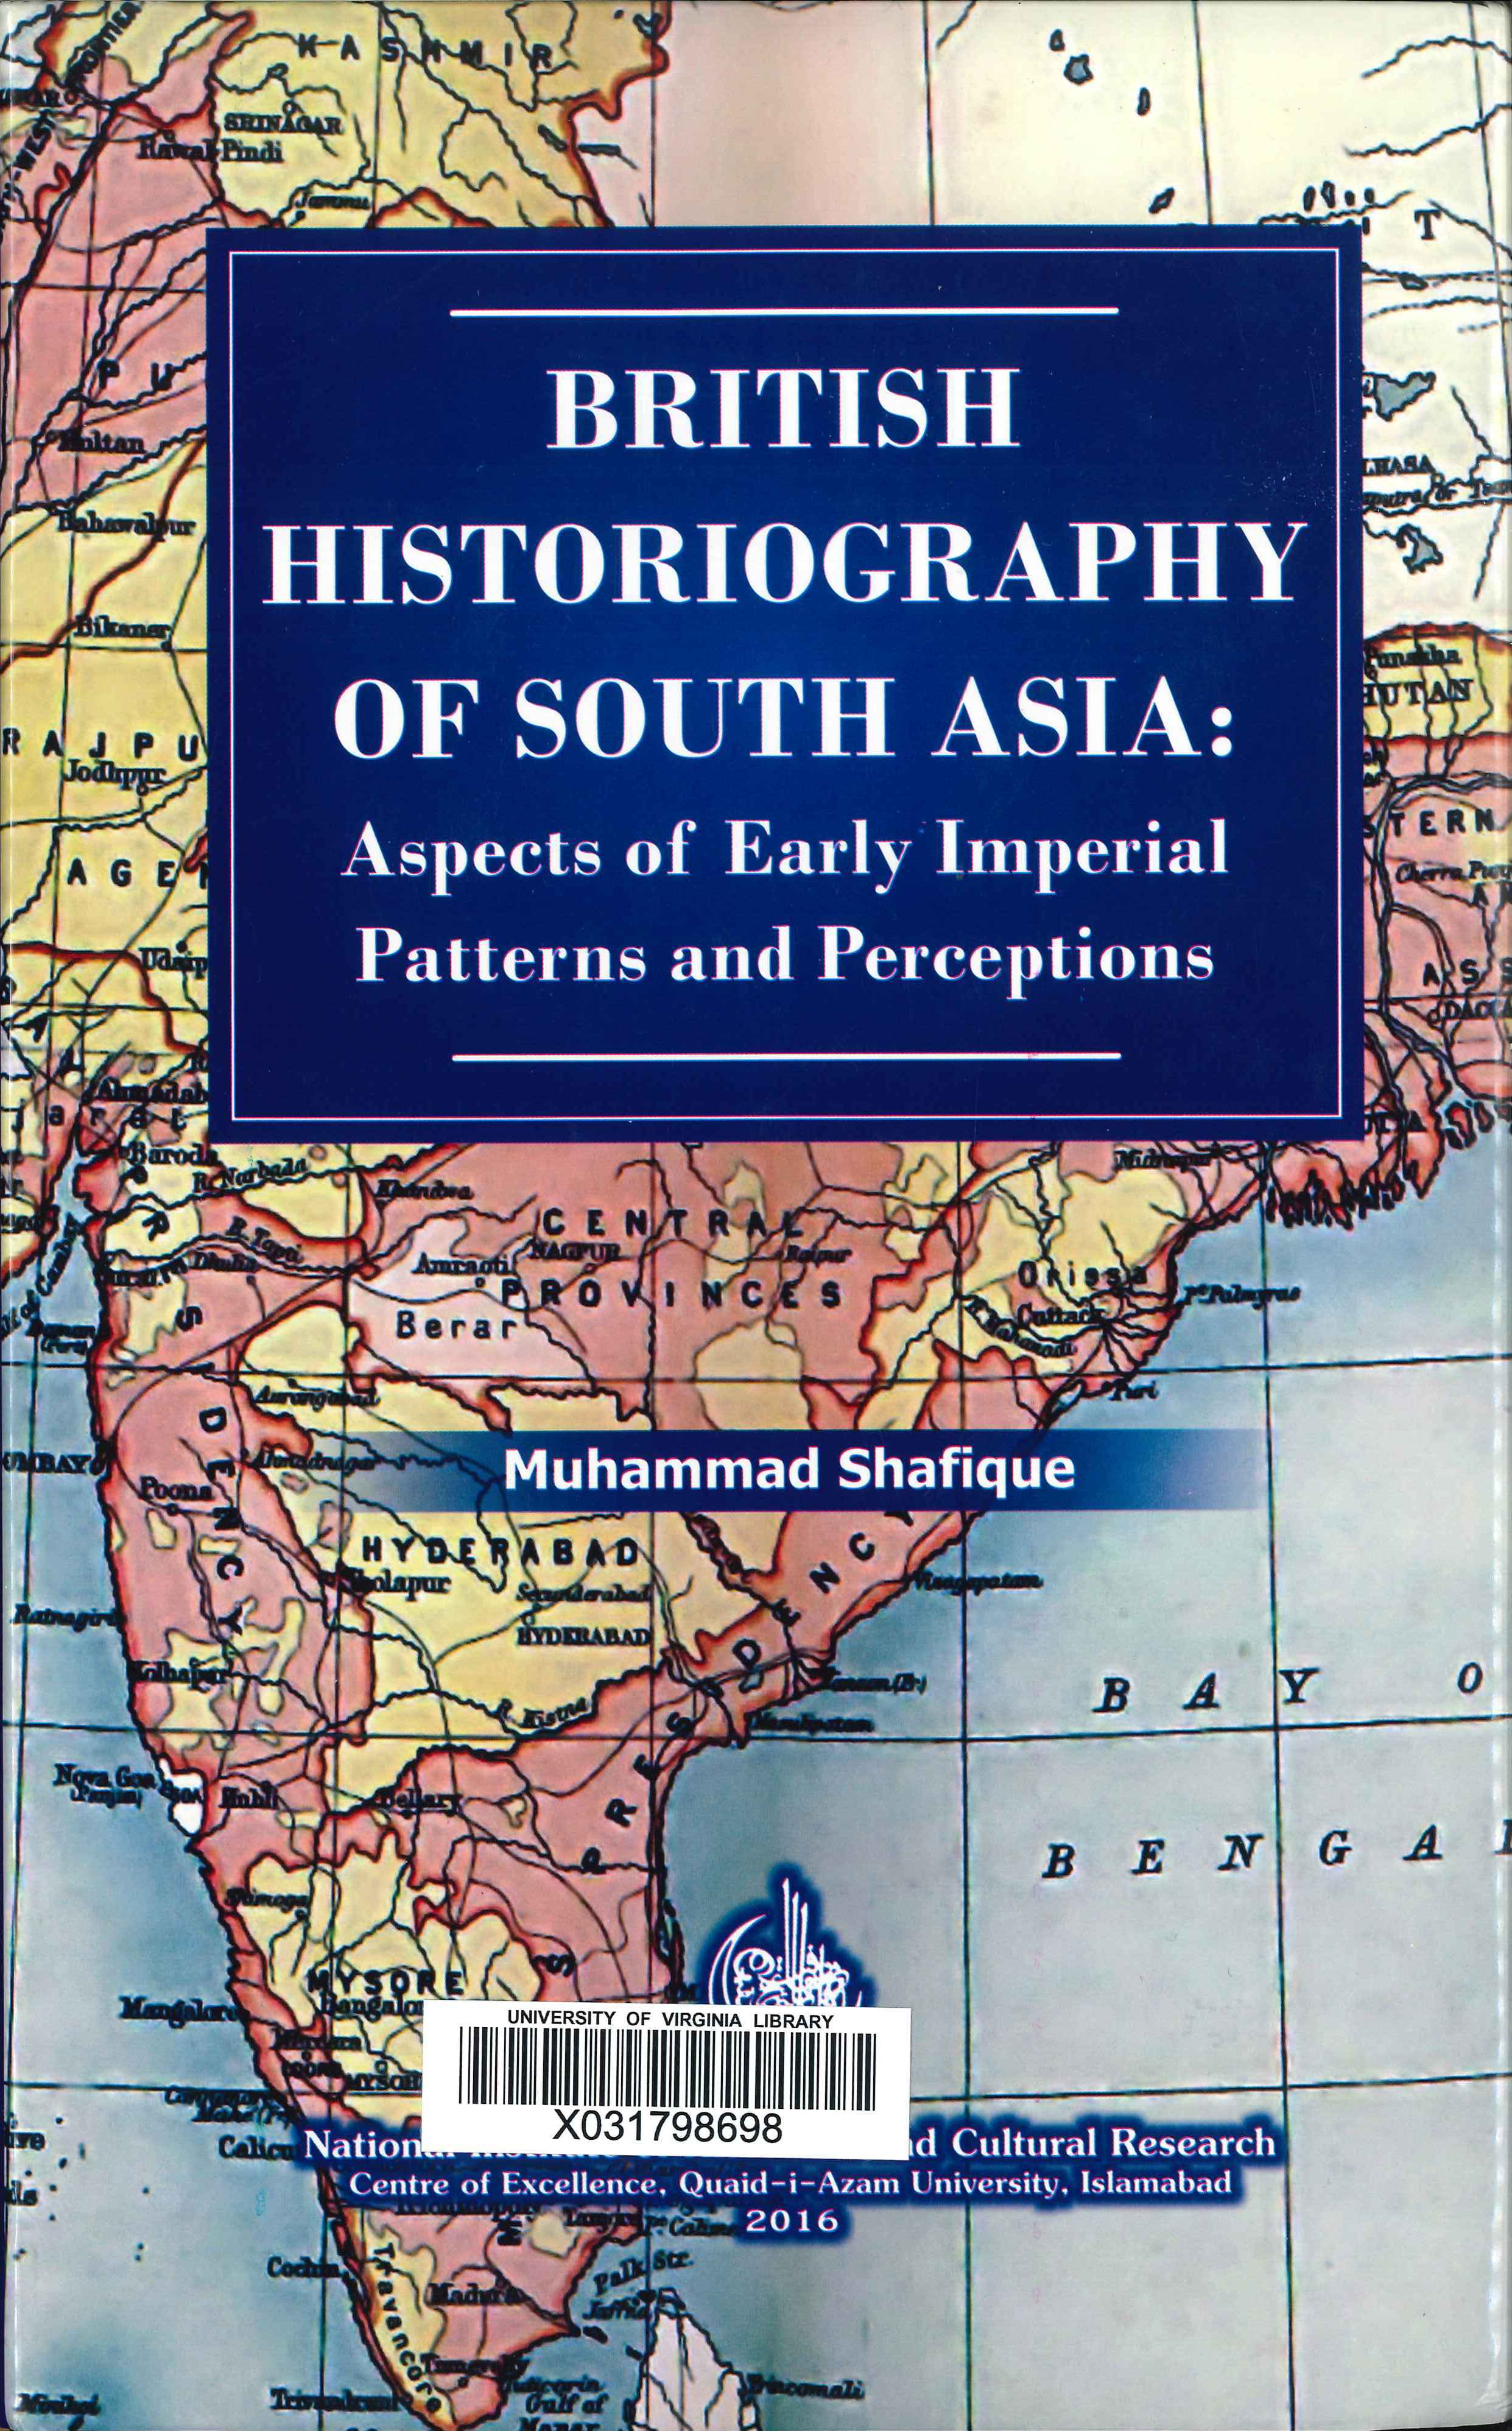 British historiography of South Asia